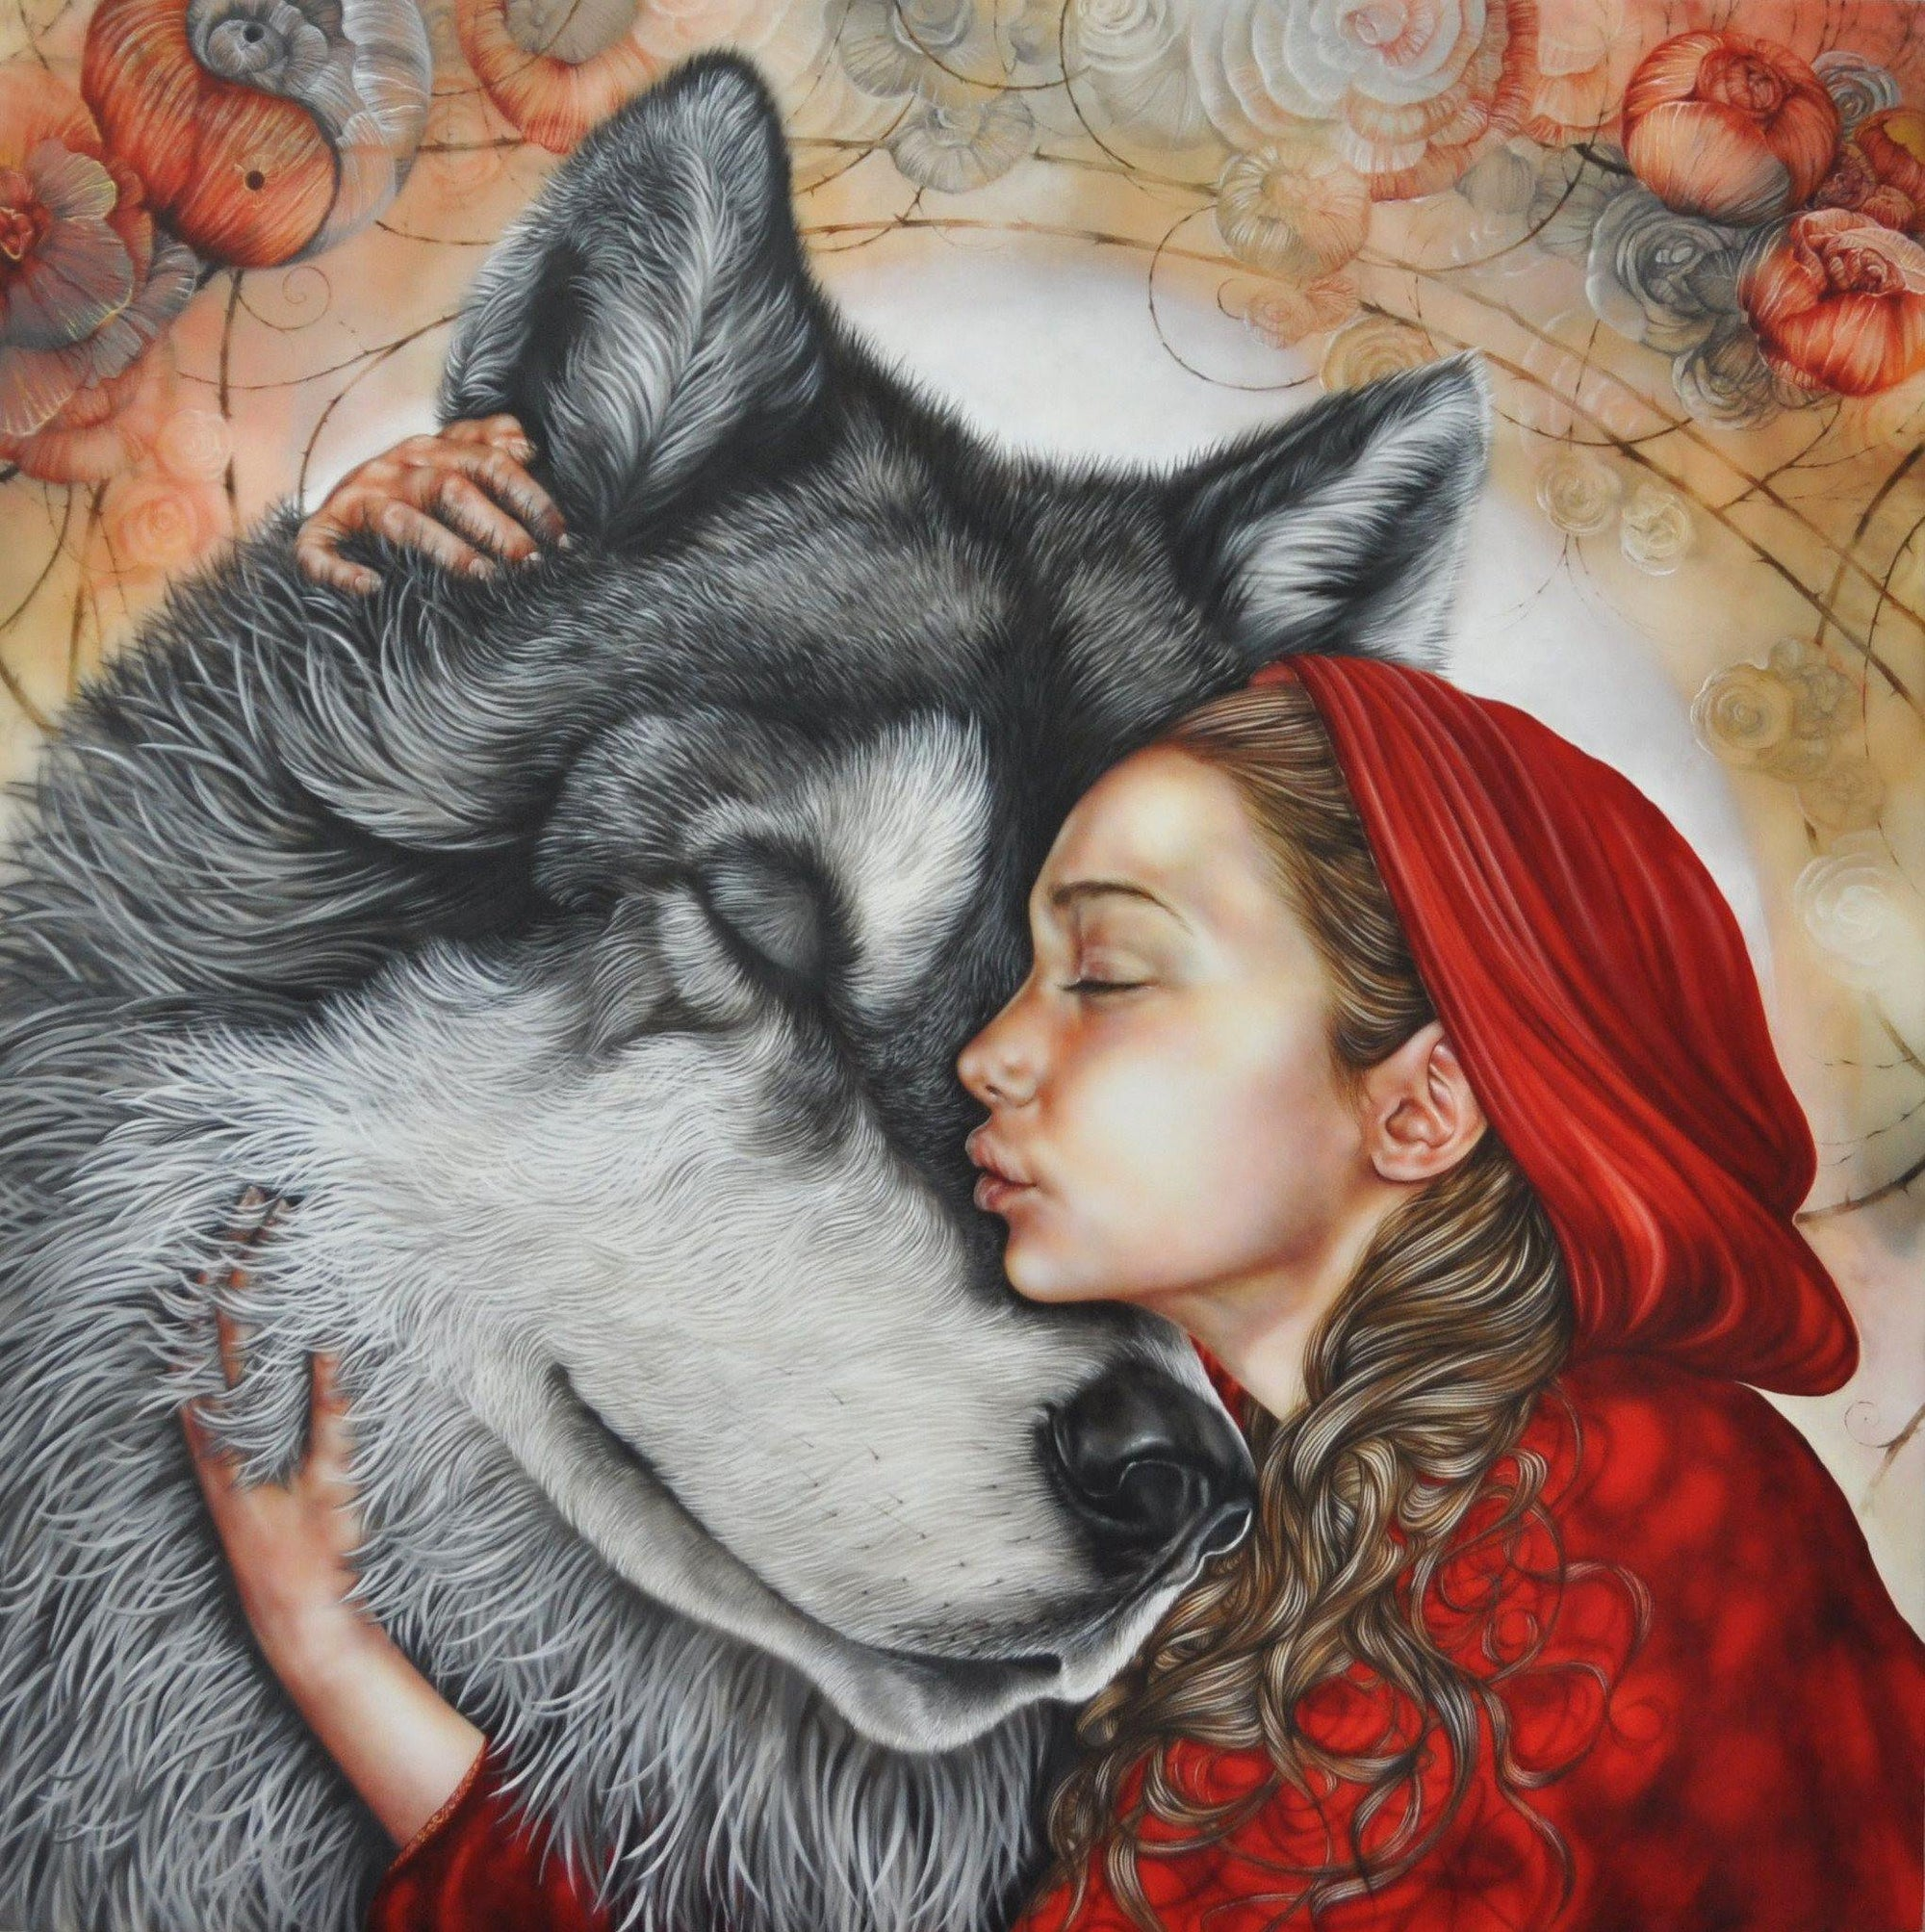 Little Red Riding Hood - Original Kerry Darlington